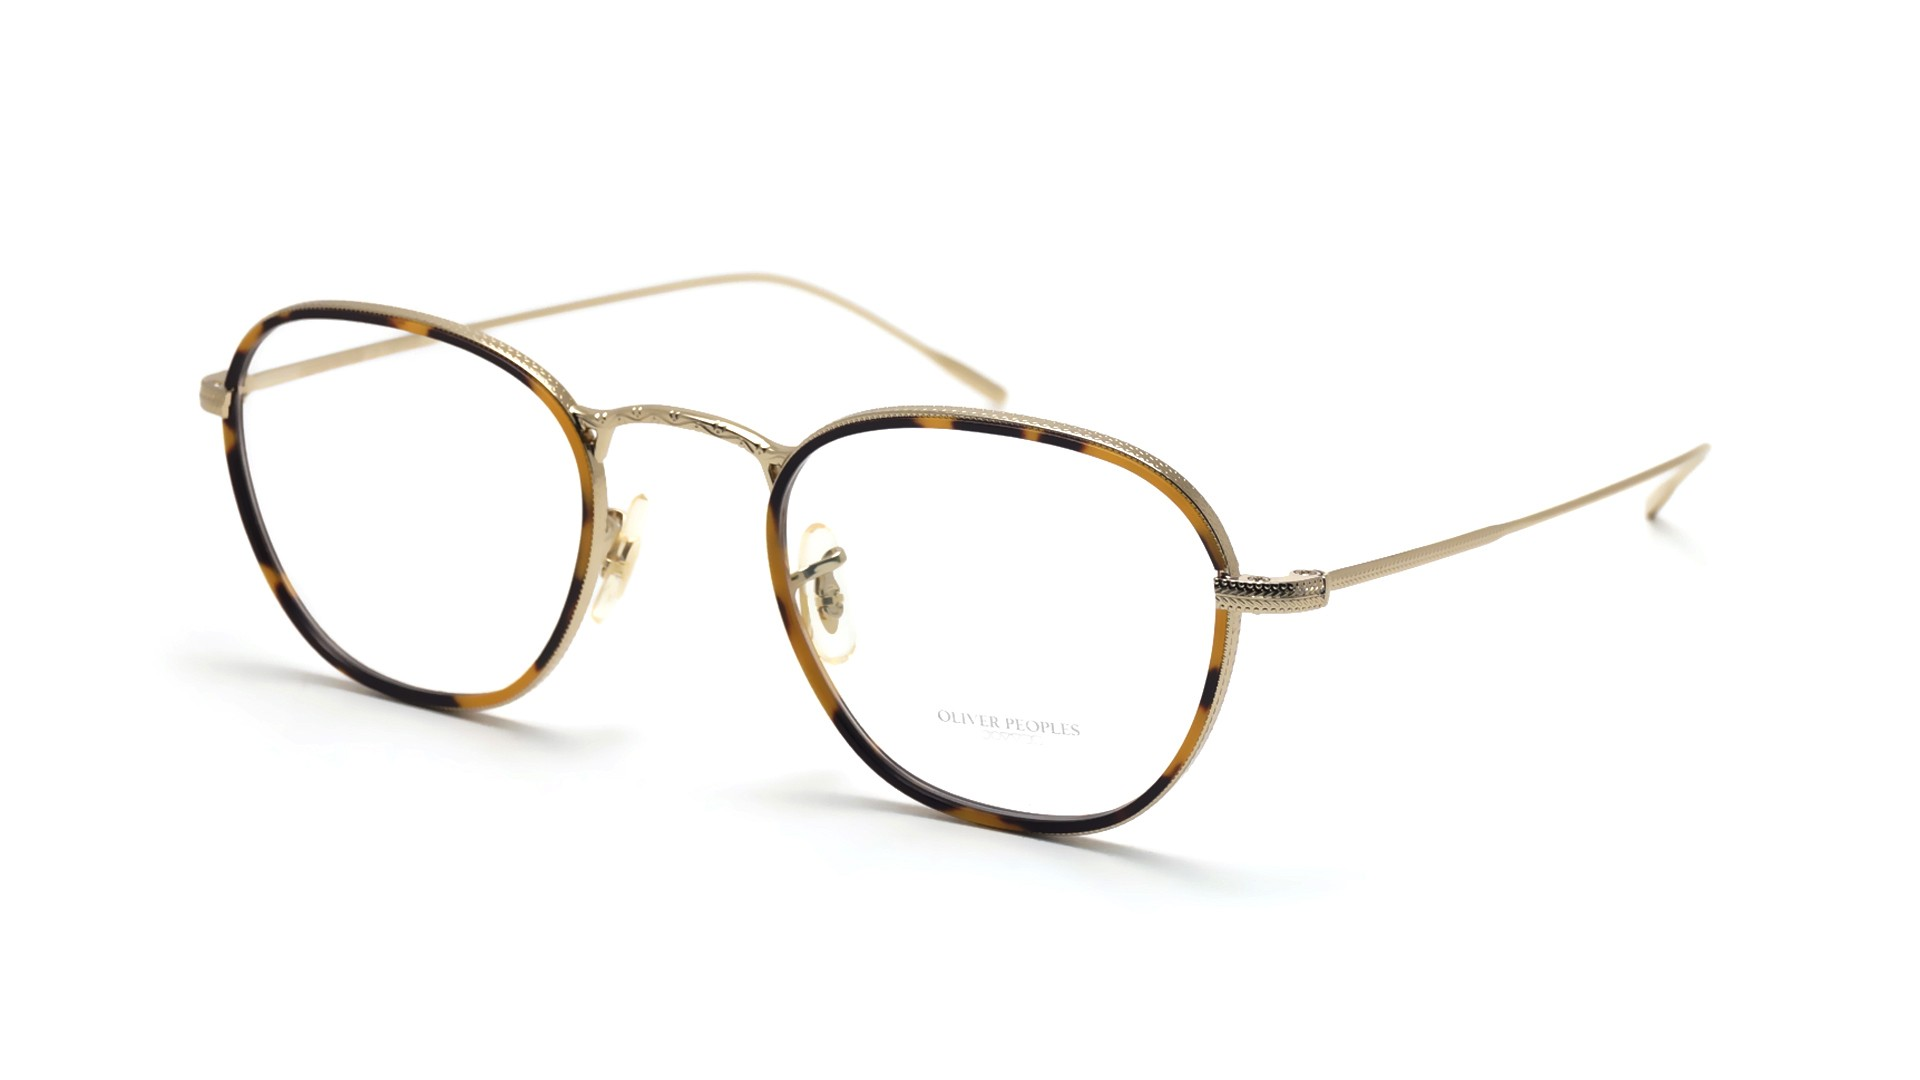 Oliver Peoples Eoin Écaille OV1237J 5035 48 22 Small